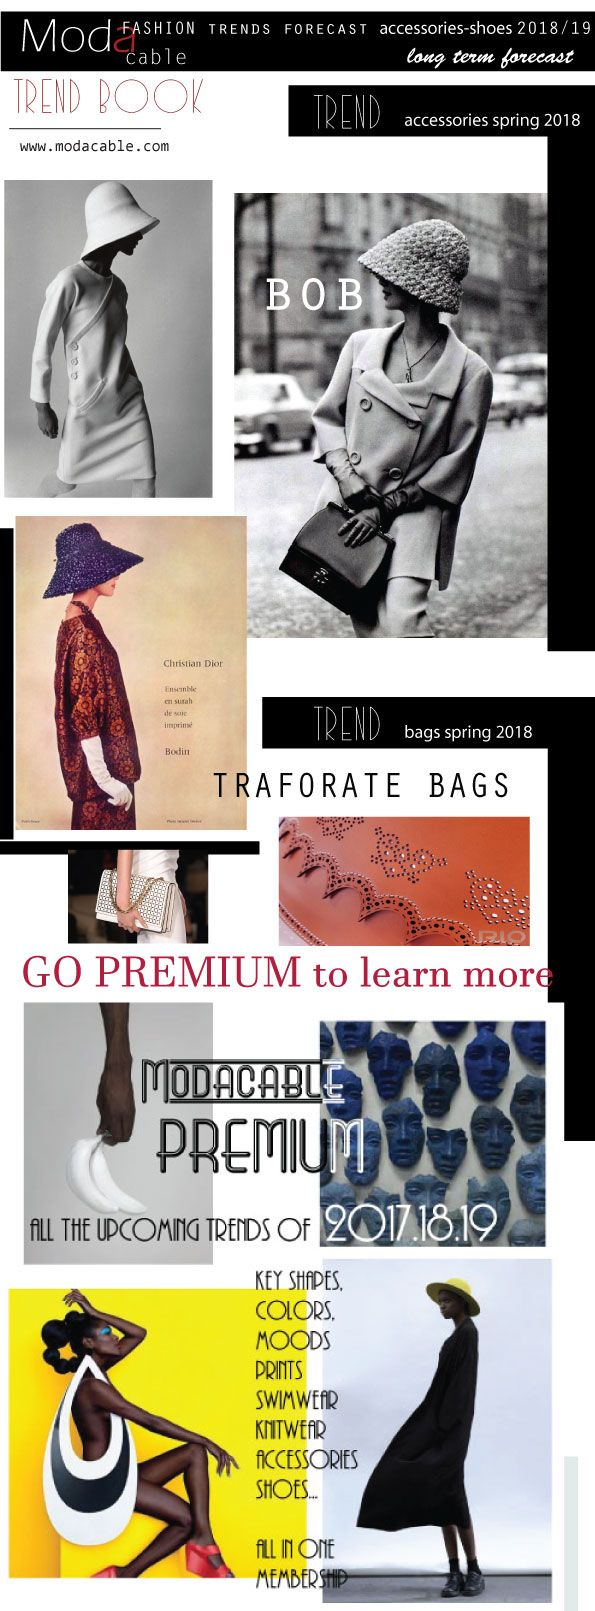 modacable fashion forecast 2018.19 is already her...go PREMIUM to unlock all of the pages!!!